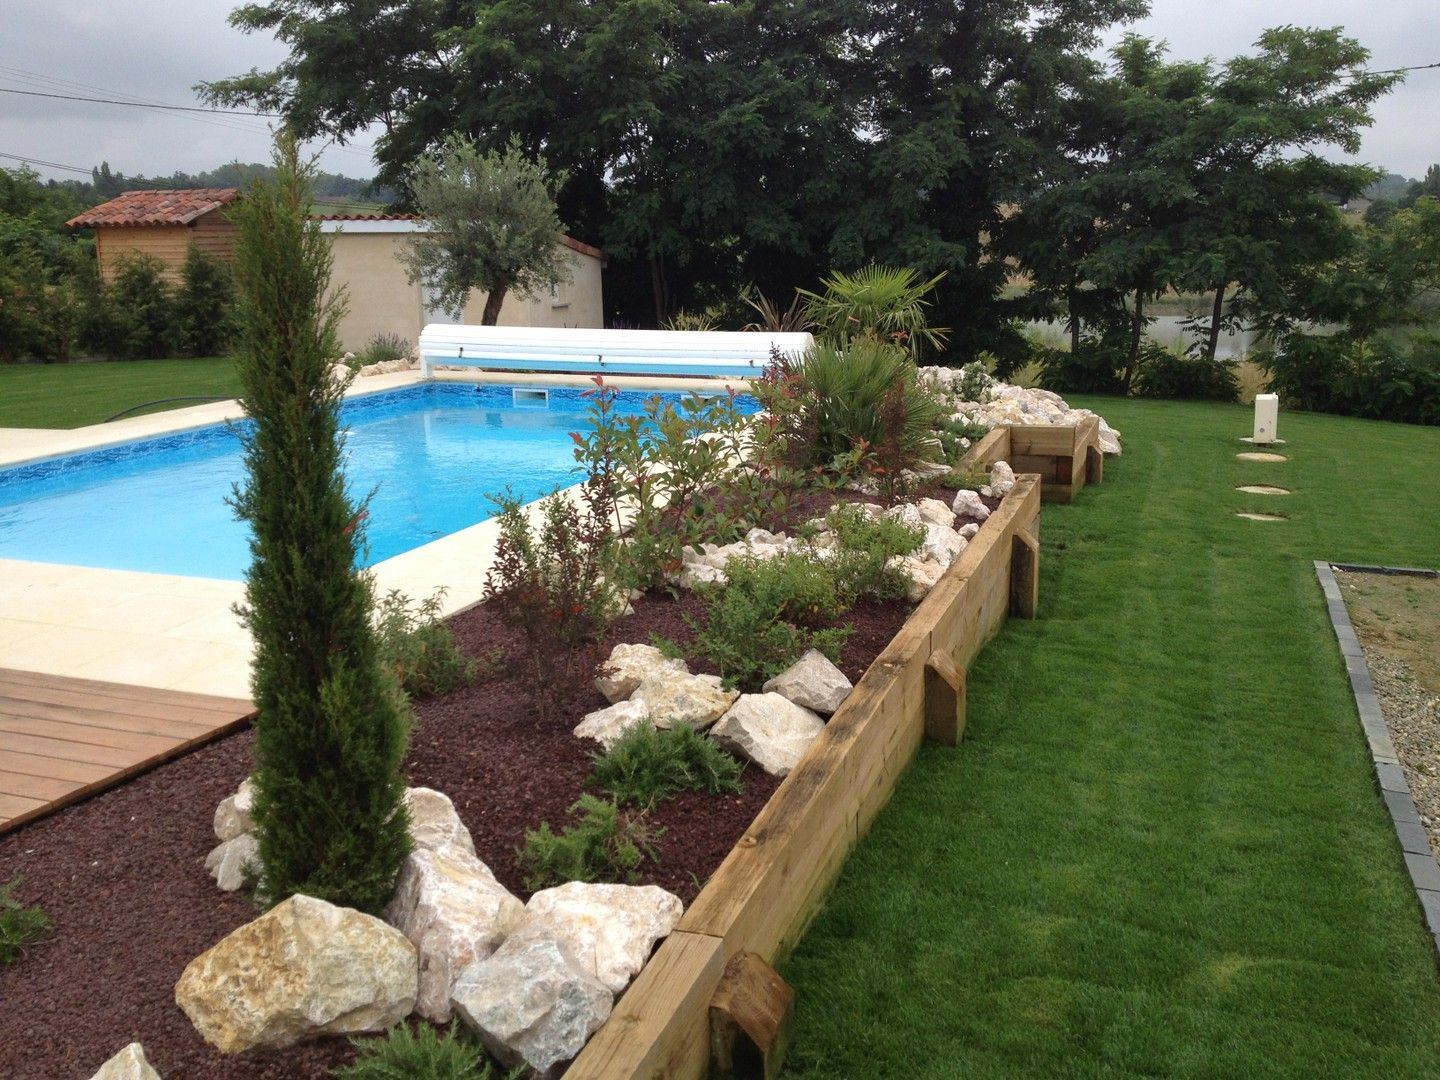 Am nagement tour de piscine pools pinterest swimming for Amenagement paysager autour piscine